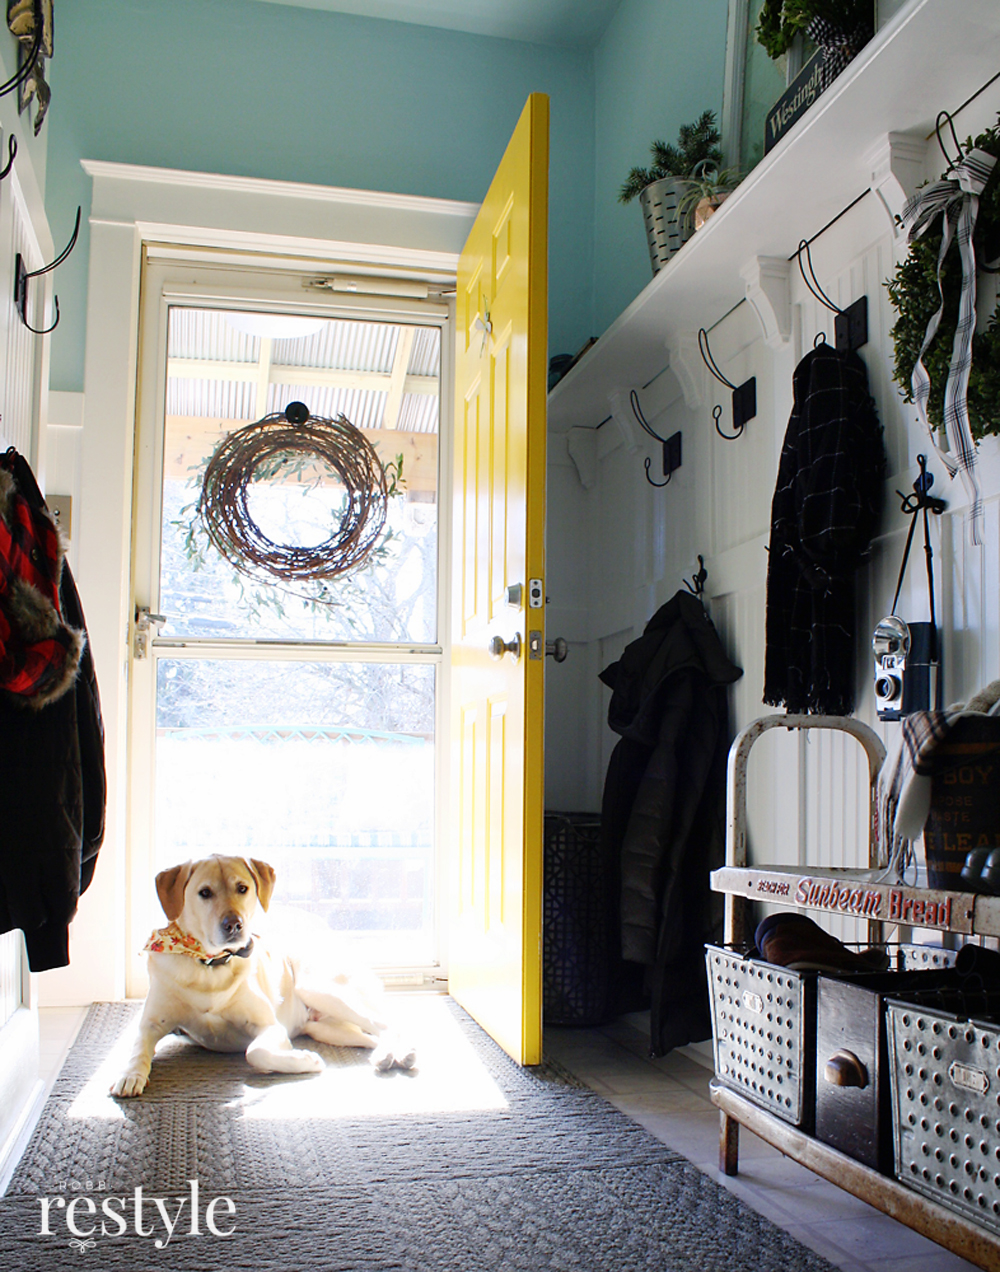 Eclectic Christmas Home Tour - love this foyer with yellow front door and vintage Sunbeam Bread shelf